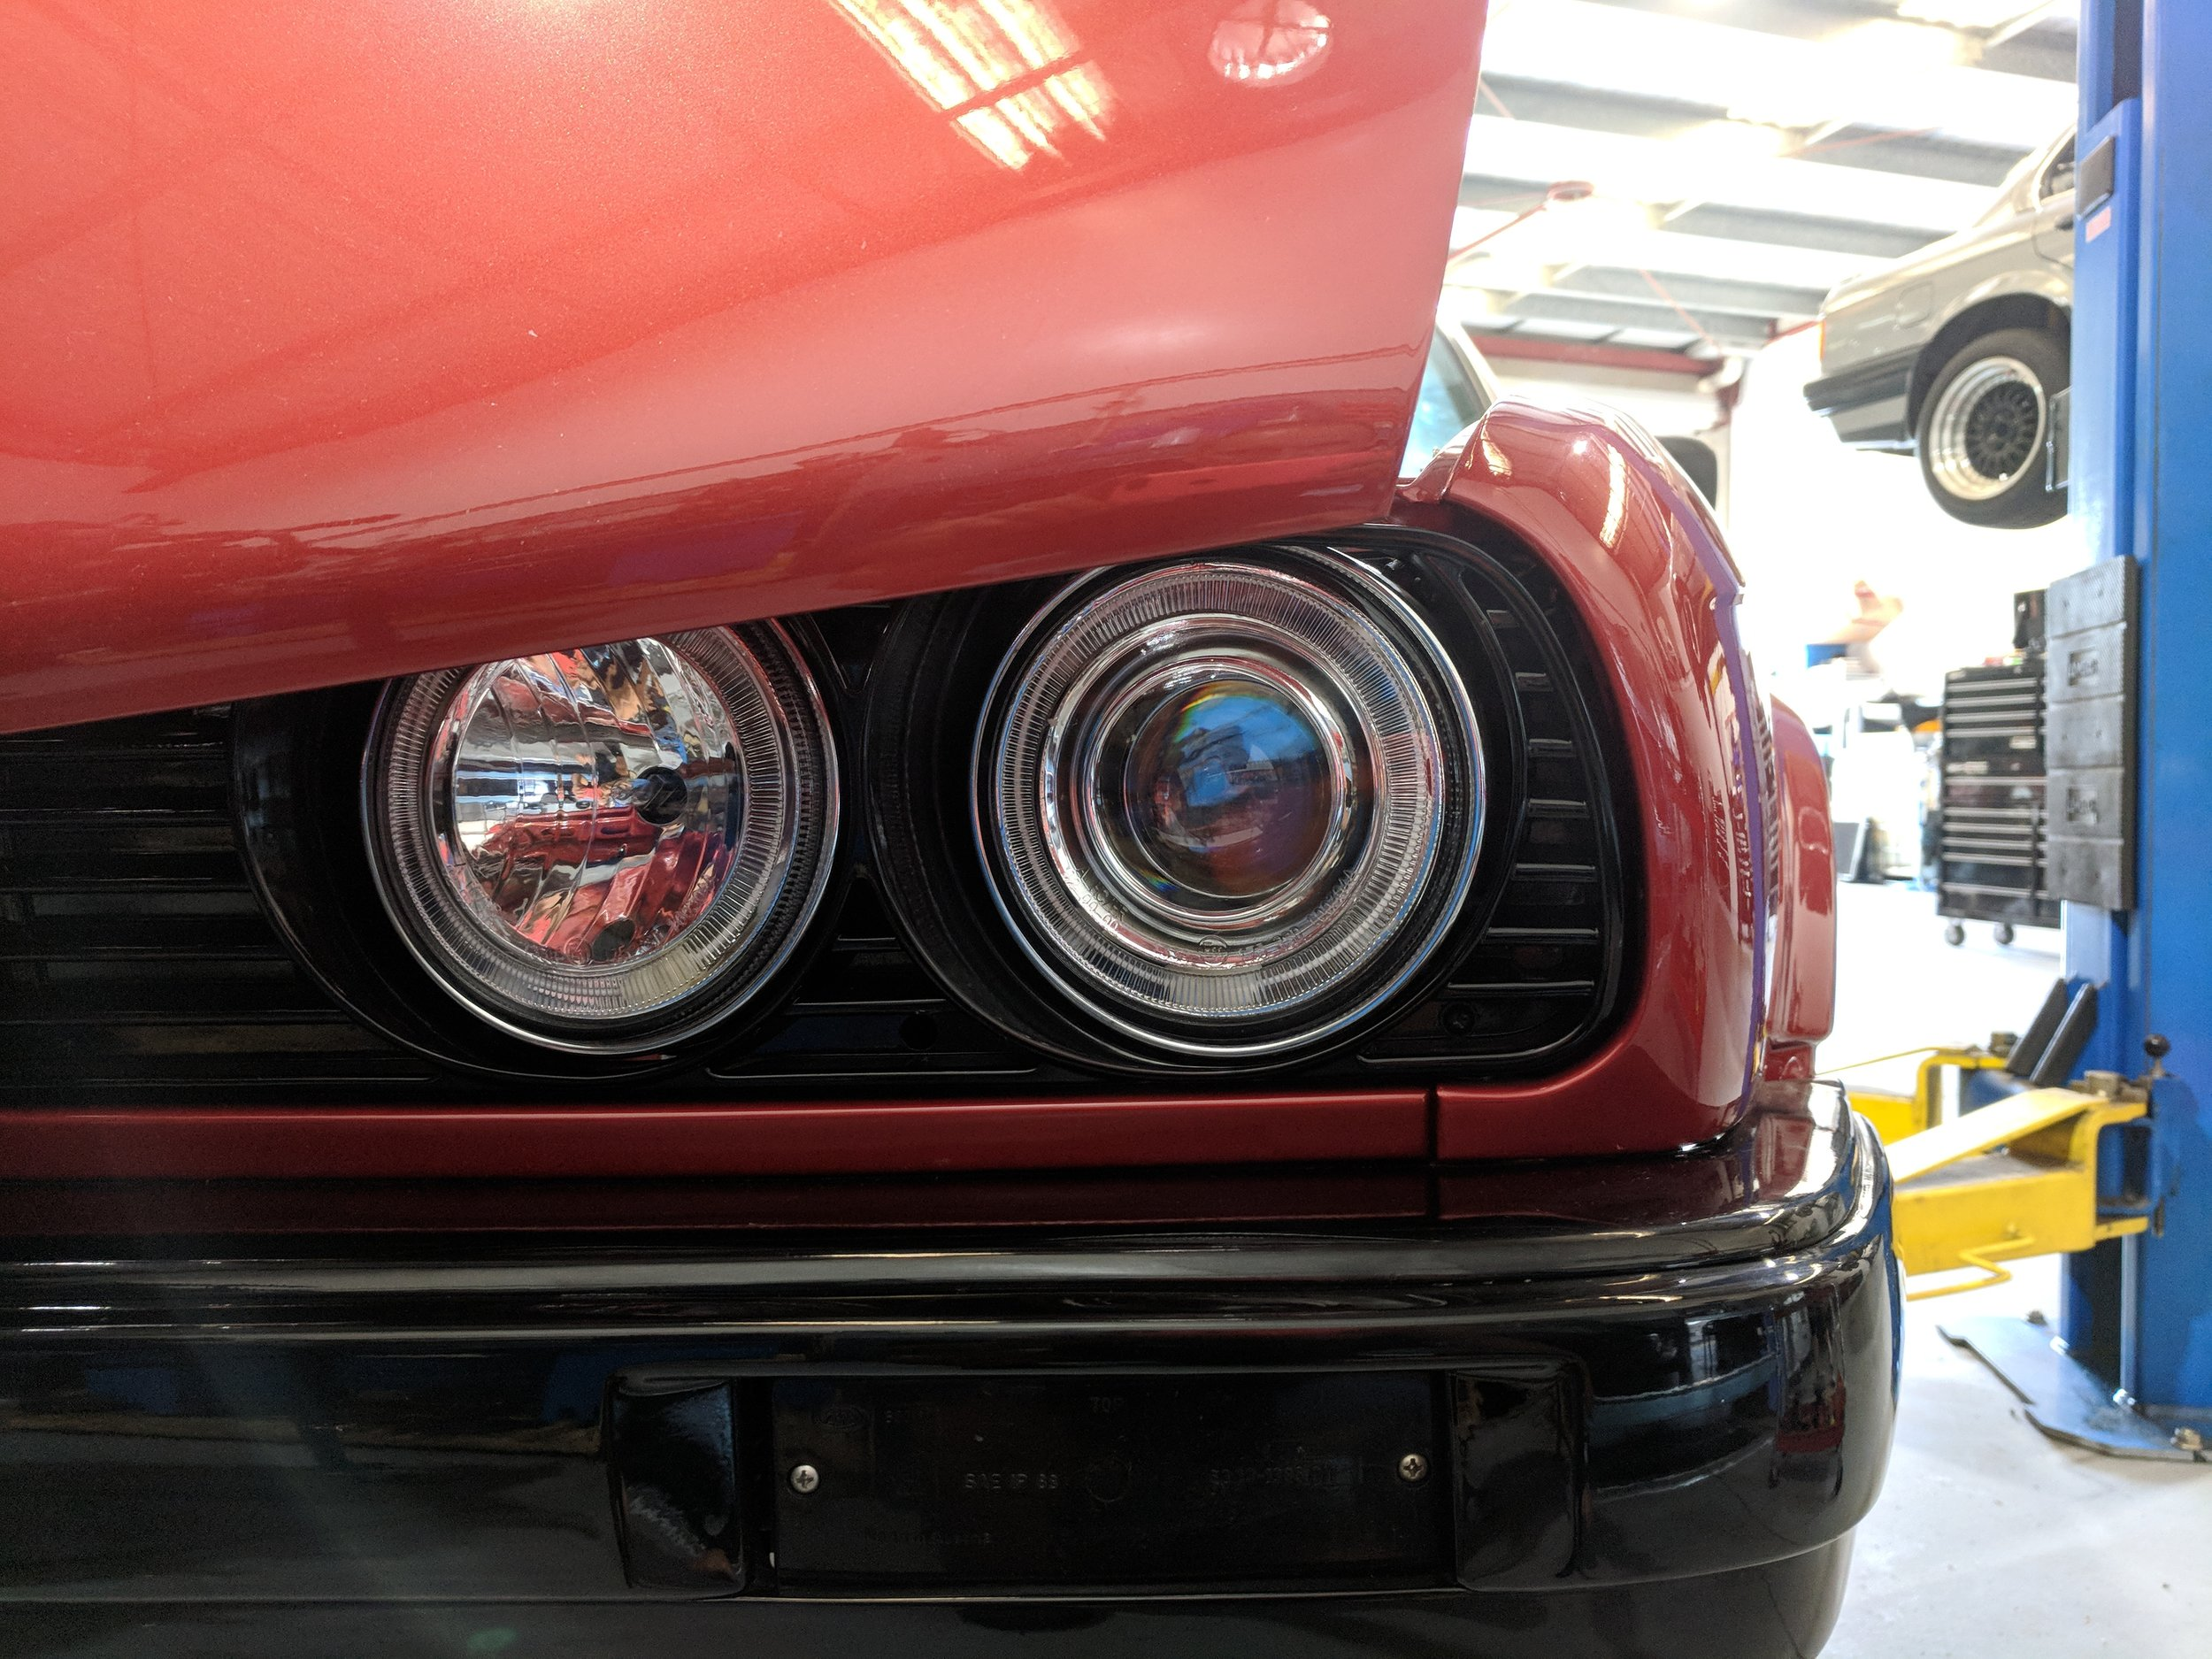 A fresh E30 for a fresh new year ———Project No. 1 for 2019——— - This clean little car we purchased a few months ago at the auctions with plans of an engine swap for the new year.Check out all our episodes below. Once finished, this car will be available for sale!Keep checking back on this page for weekly updates and subscribe to our YouTube Channel for detailed build episode alerts.For any enquiries or expressions of interest, feel free to email us or contact us through our website enquiry forms.